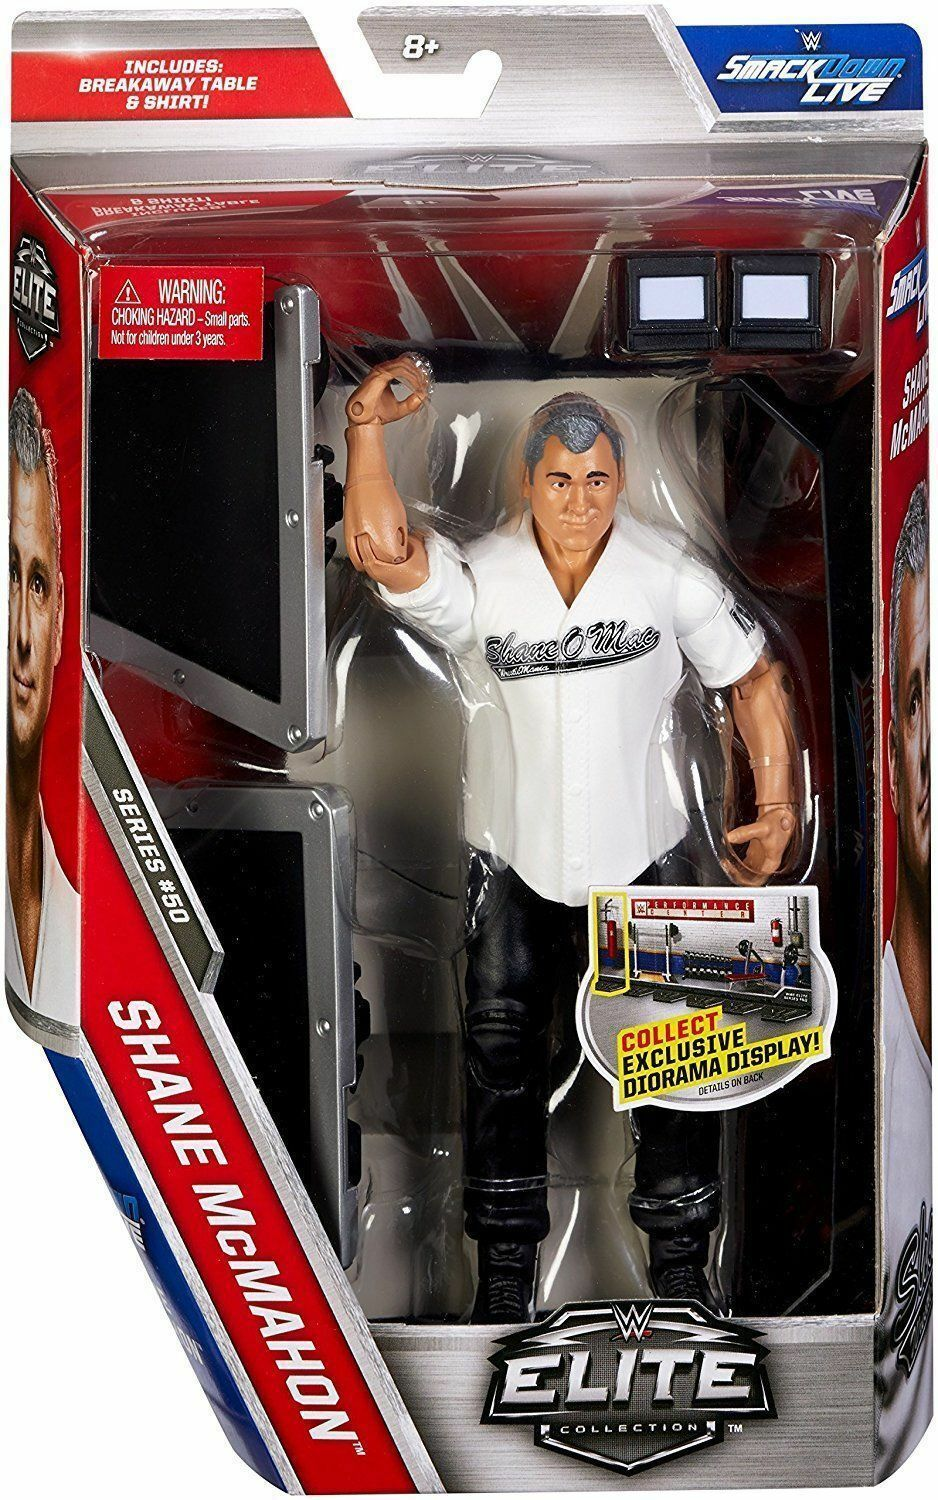 Shane McMahon Elite 50 wrestling figure, loads more for sale, combined postage